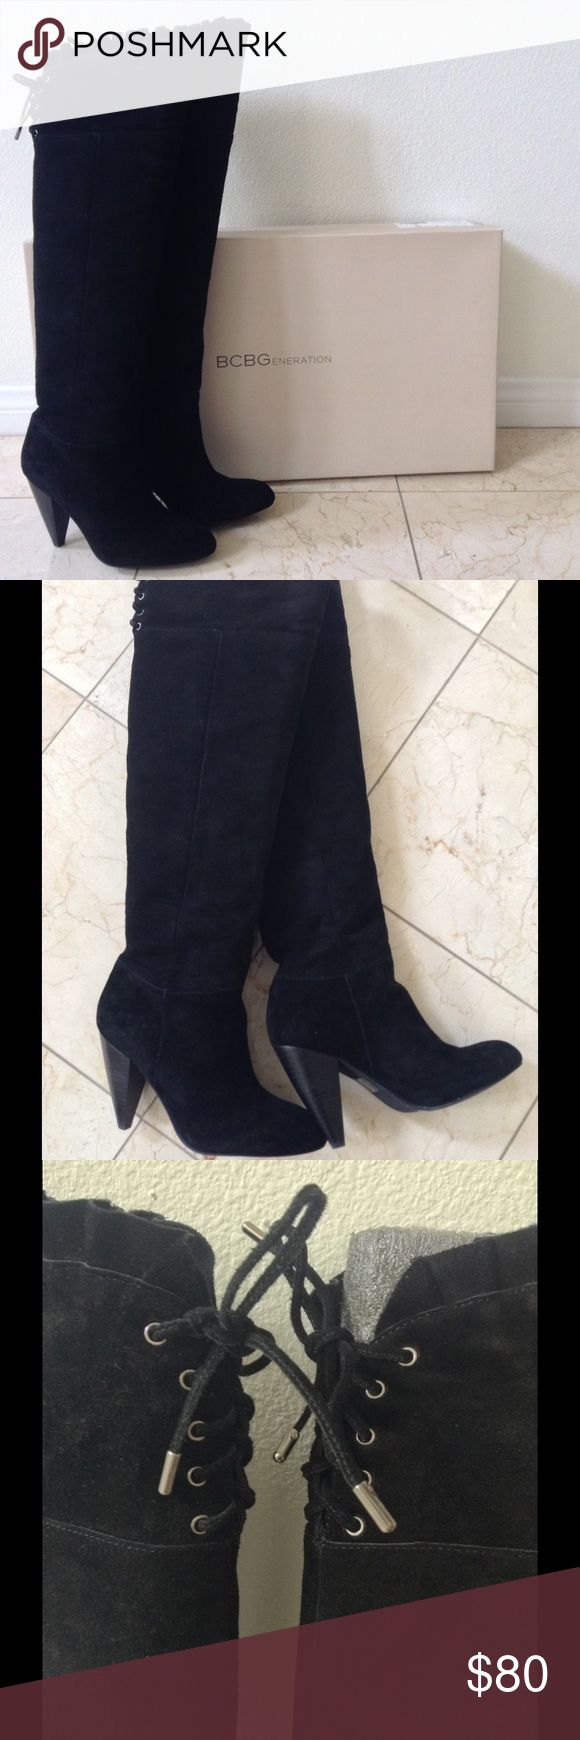 BCBGeneration Sz 7 Black Suede Knee High Boots Womens size 7 M Black Suede knee-high/over-the-knee boots.  1.5 inch heel.  Ruffle detail at the top.  Laces in the back, opens wide.  Comes in original box.  Never worn.  No trades. BCBGeneration Shoes Over the Knee Boots